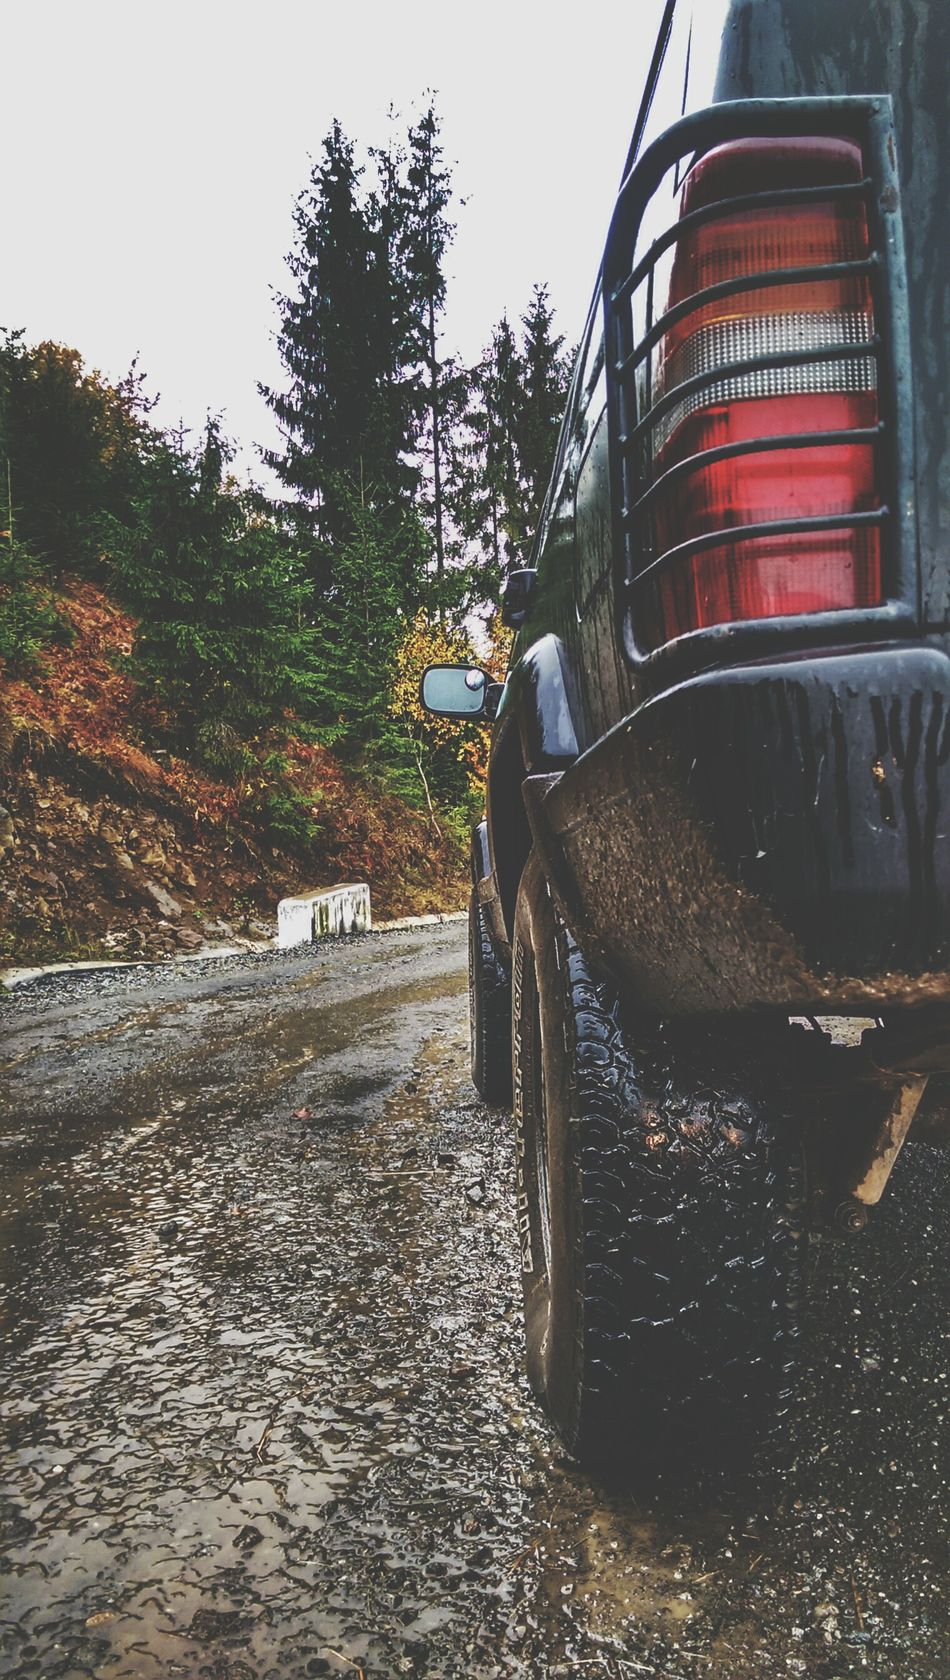 Land Vehicle Outdoors Day Road No People Vehicle Extreme Close Up Offroad HTC_photography HTC One HTC